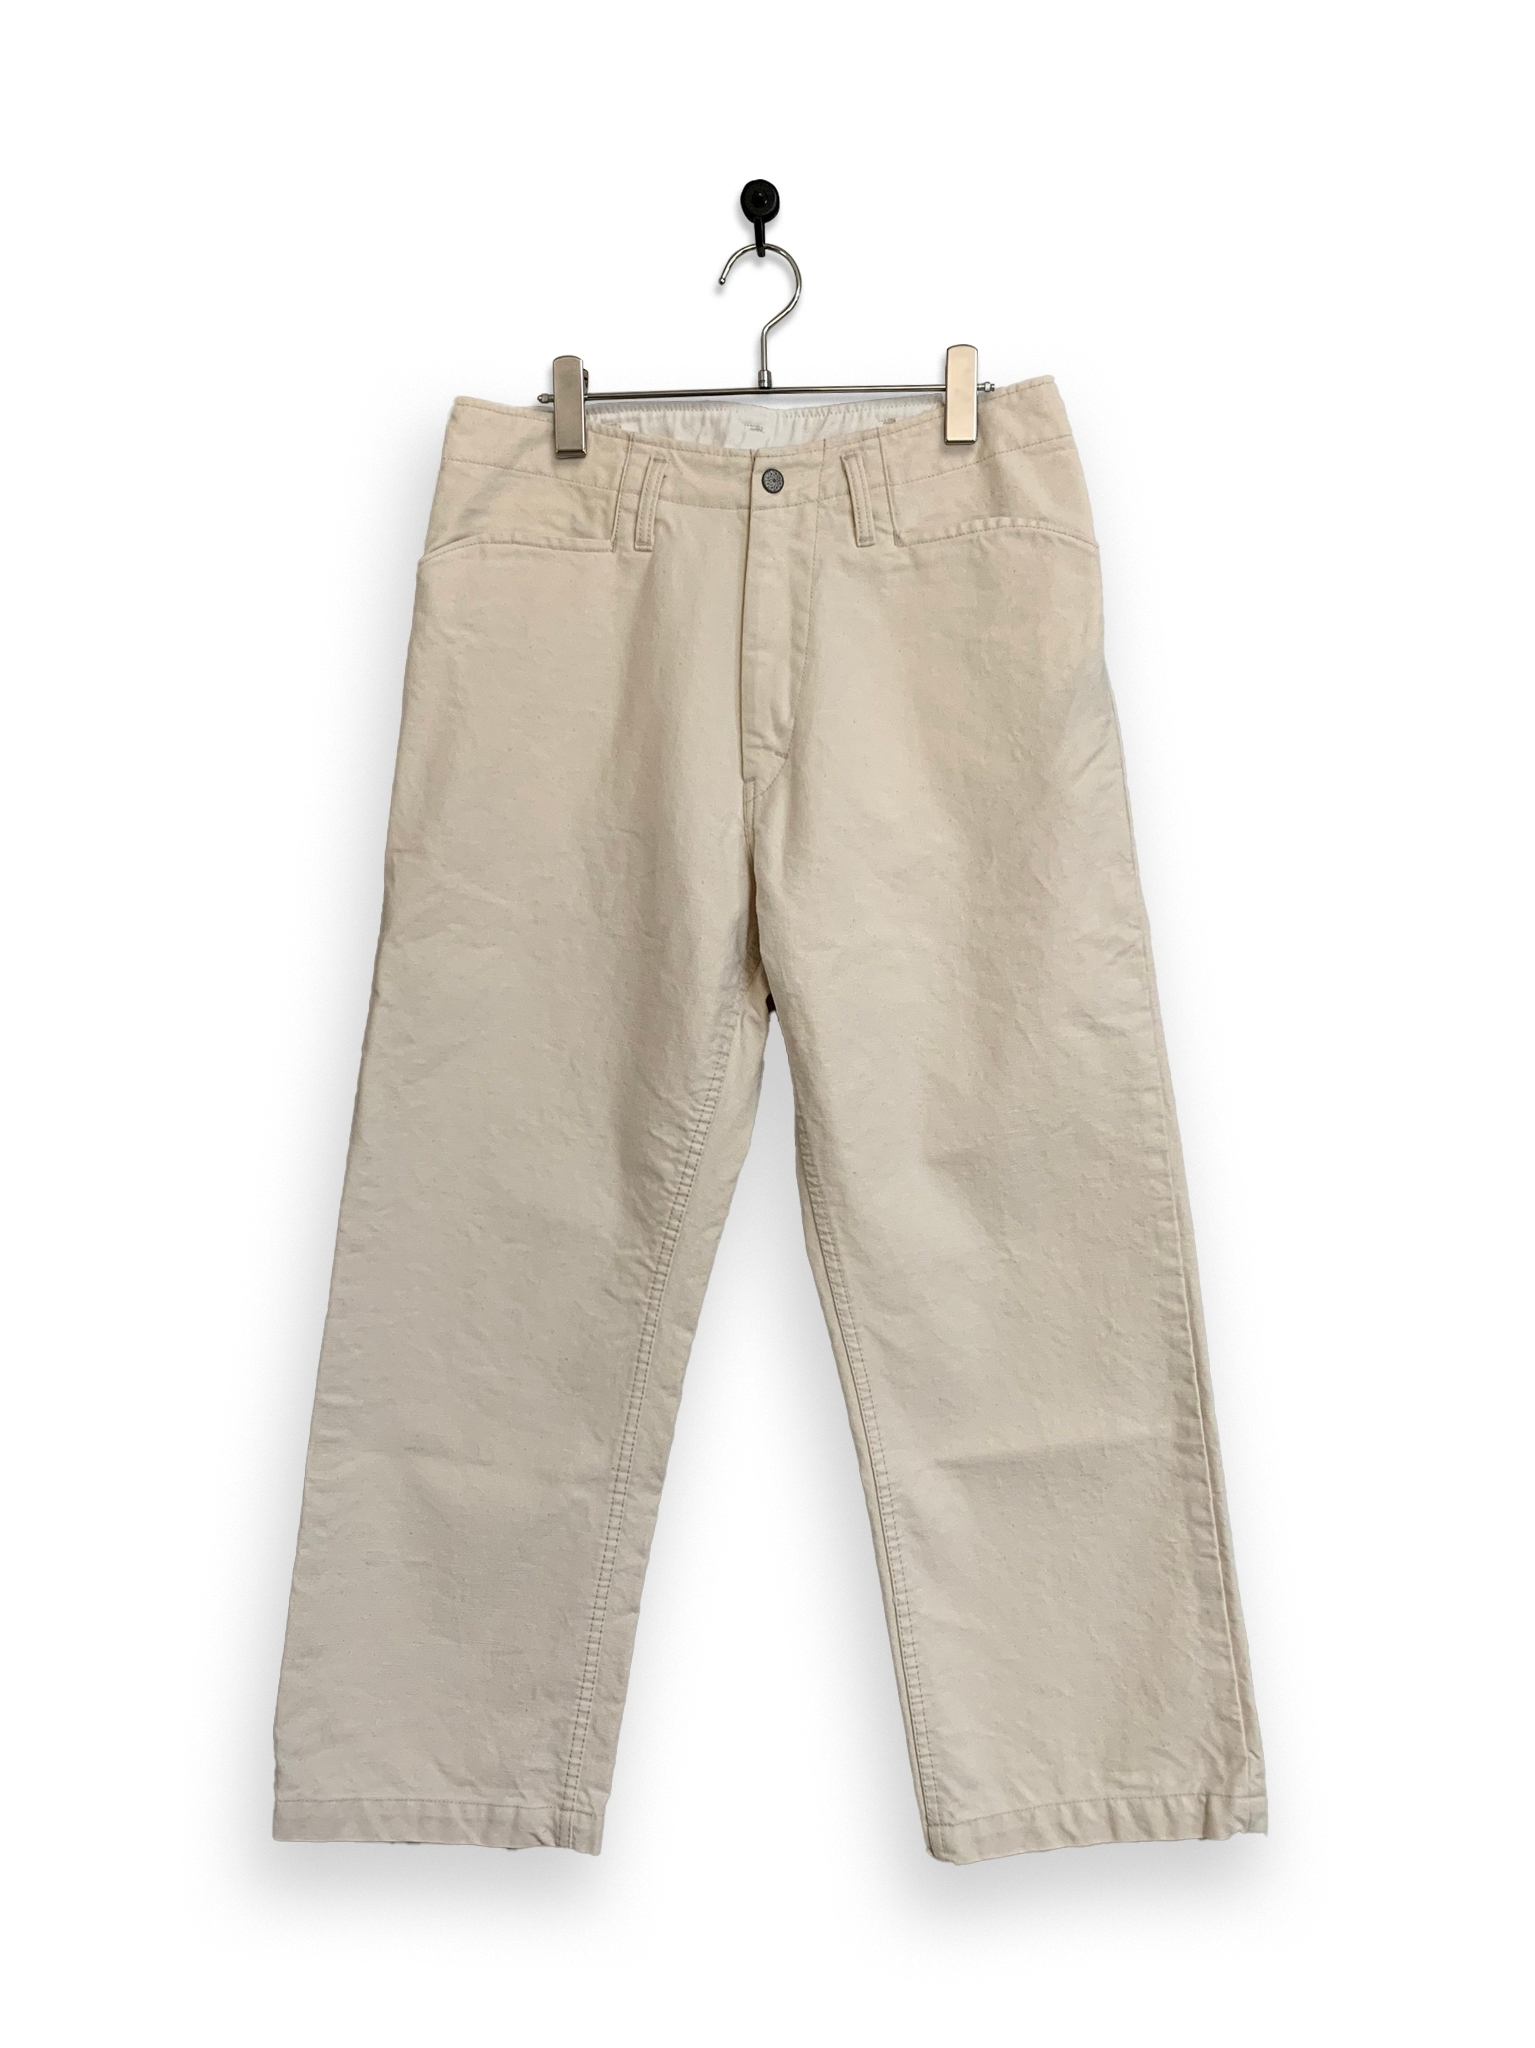 13.5oz Canvas Frisco Pants / one wash / natural